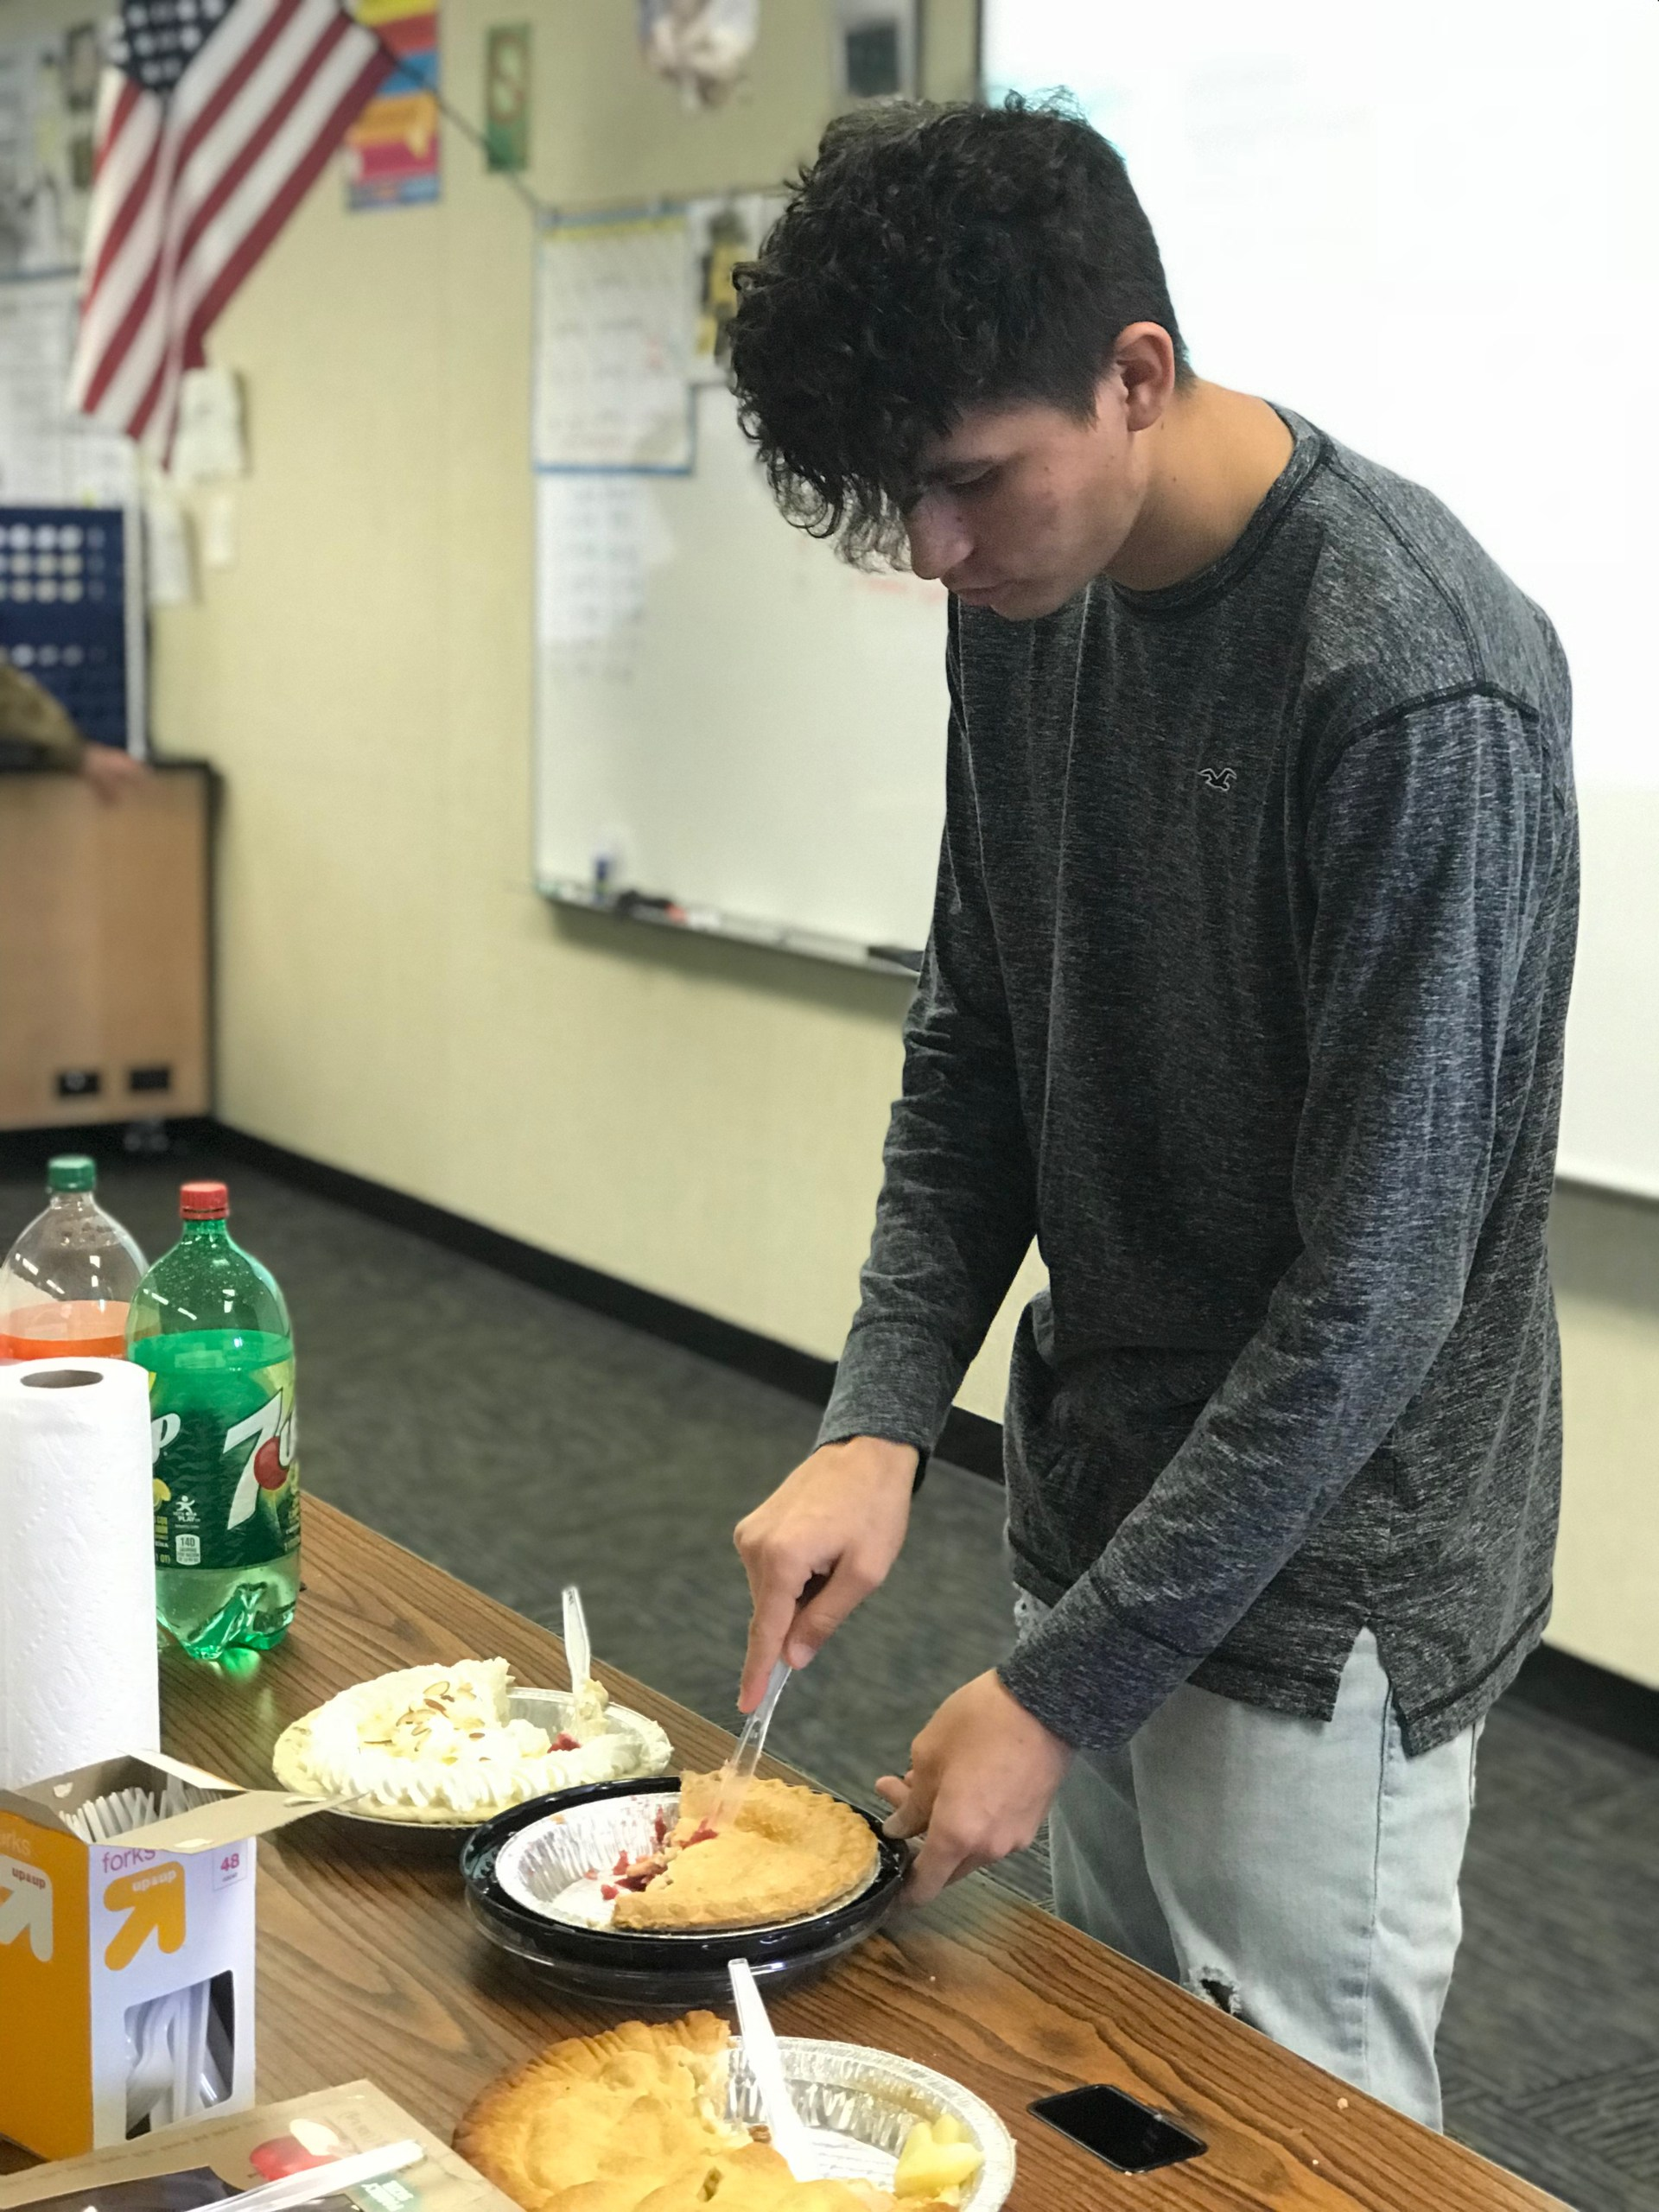 Student and pie